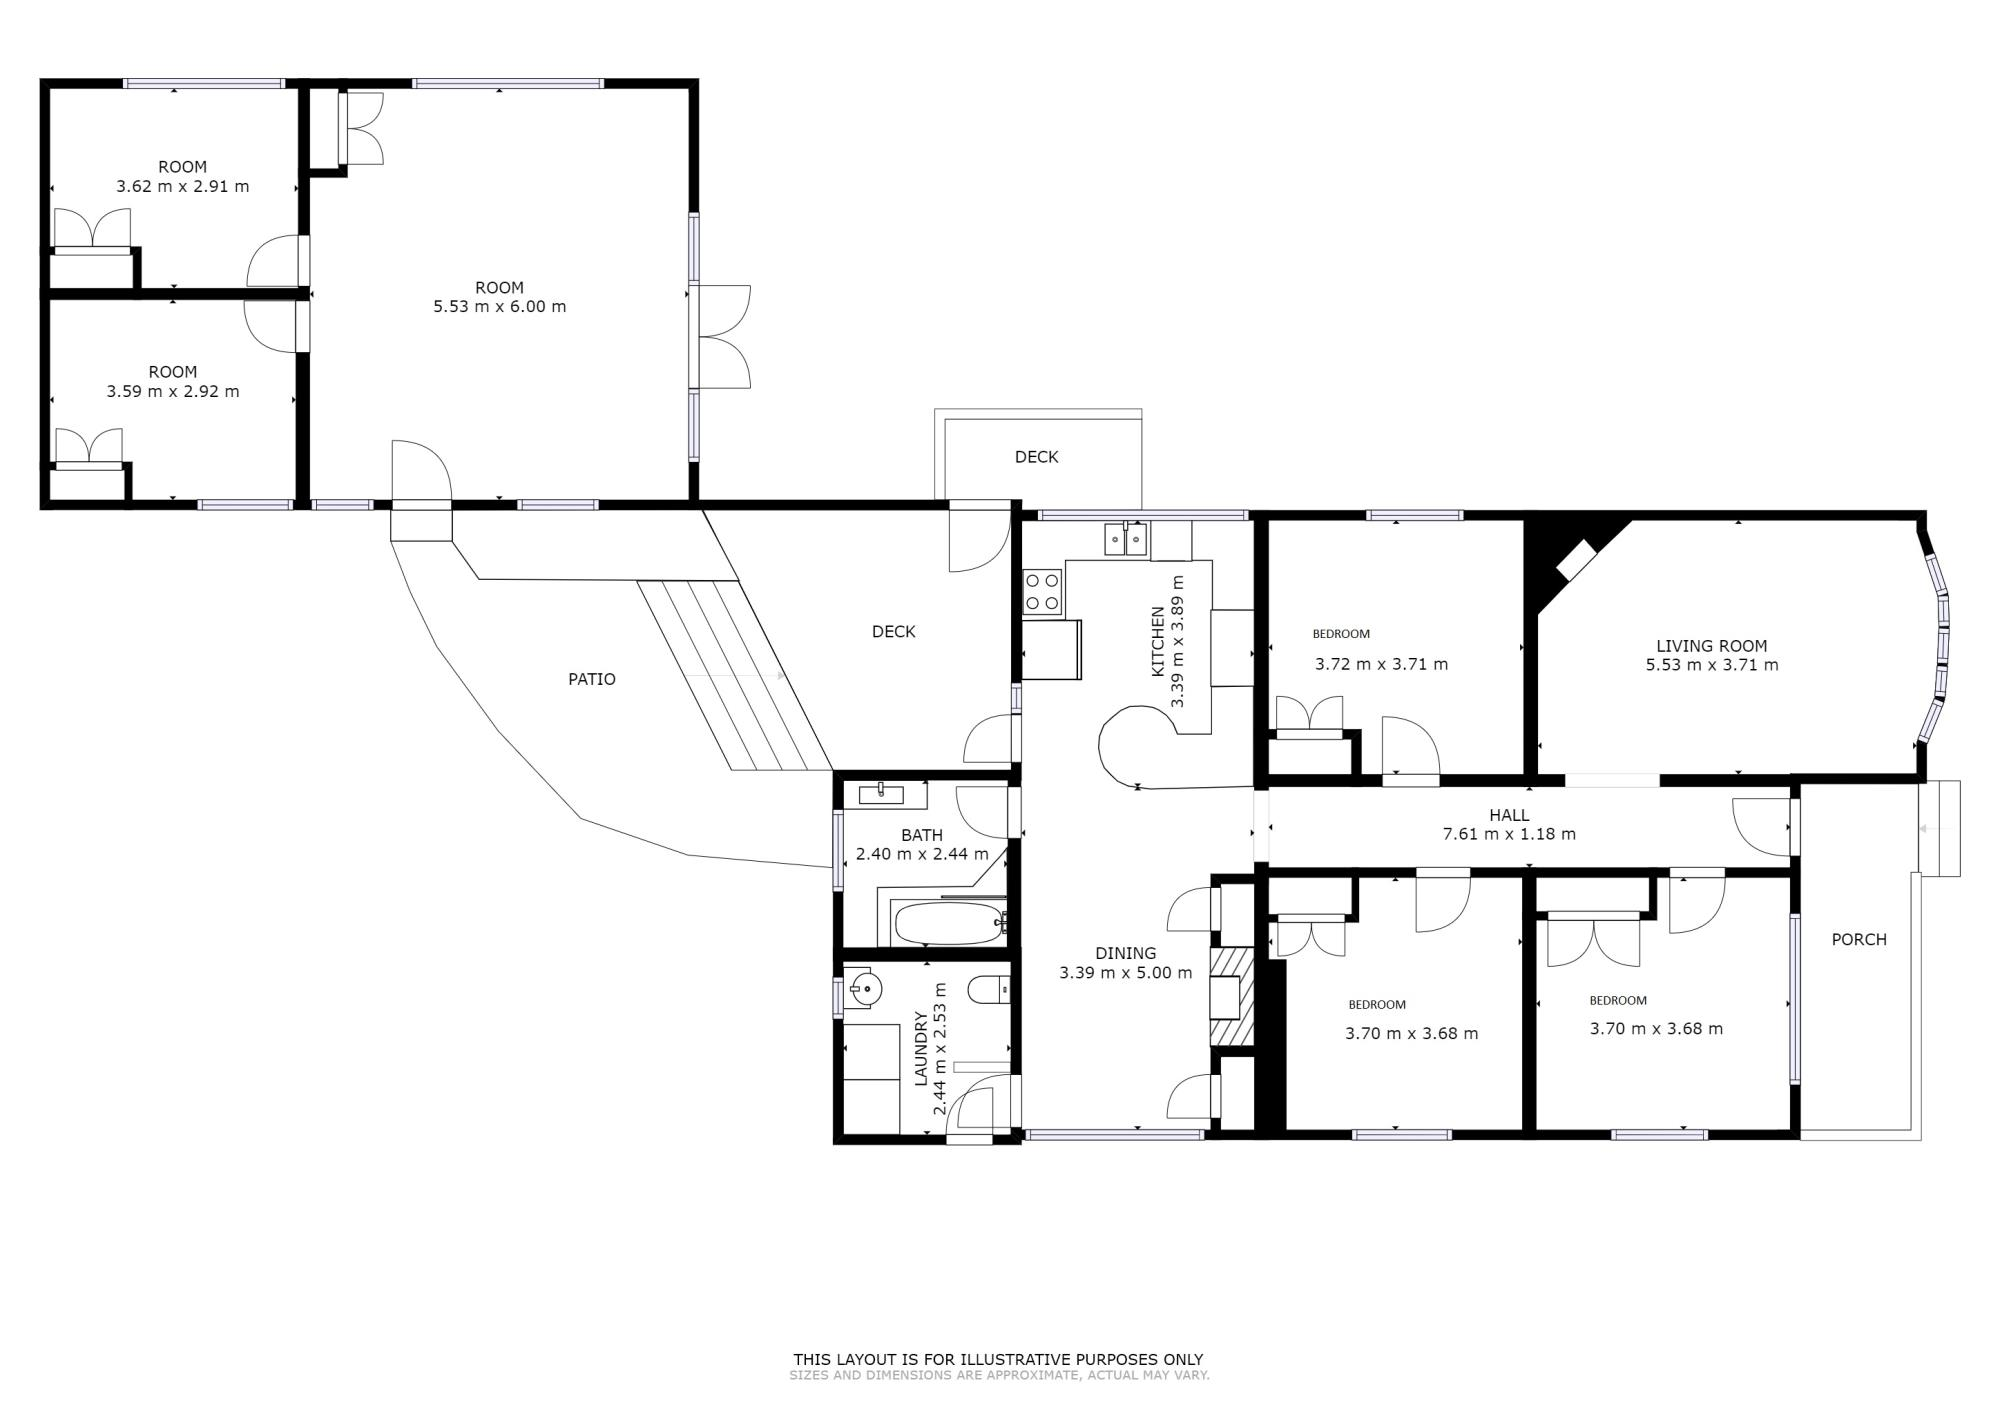 9 Wilson Avenue Avenuesproperty floorplan image